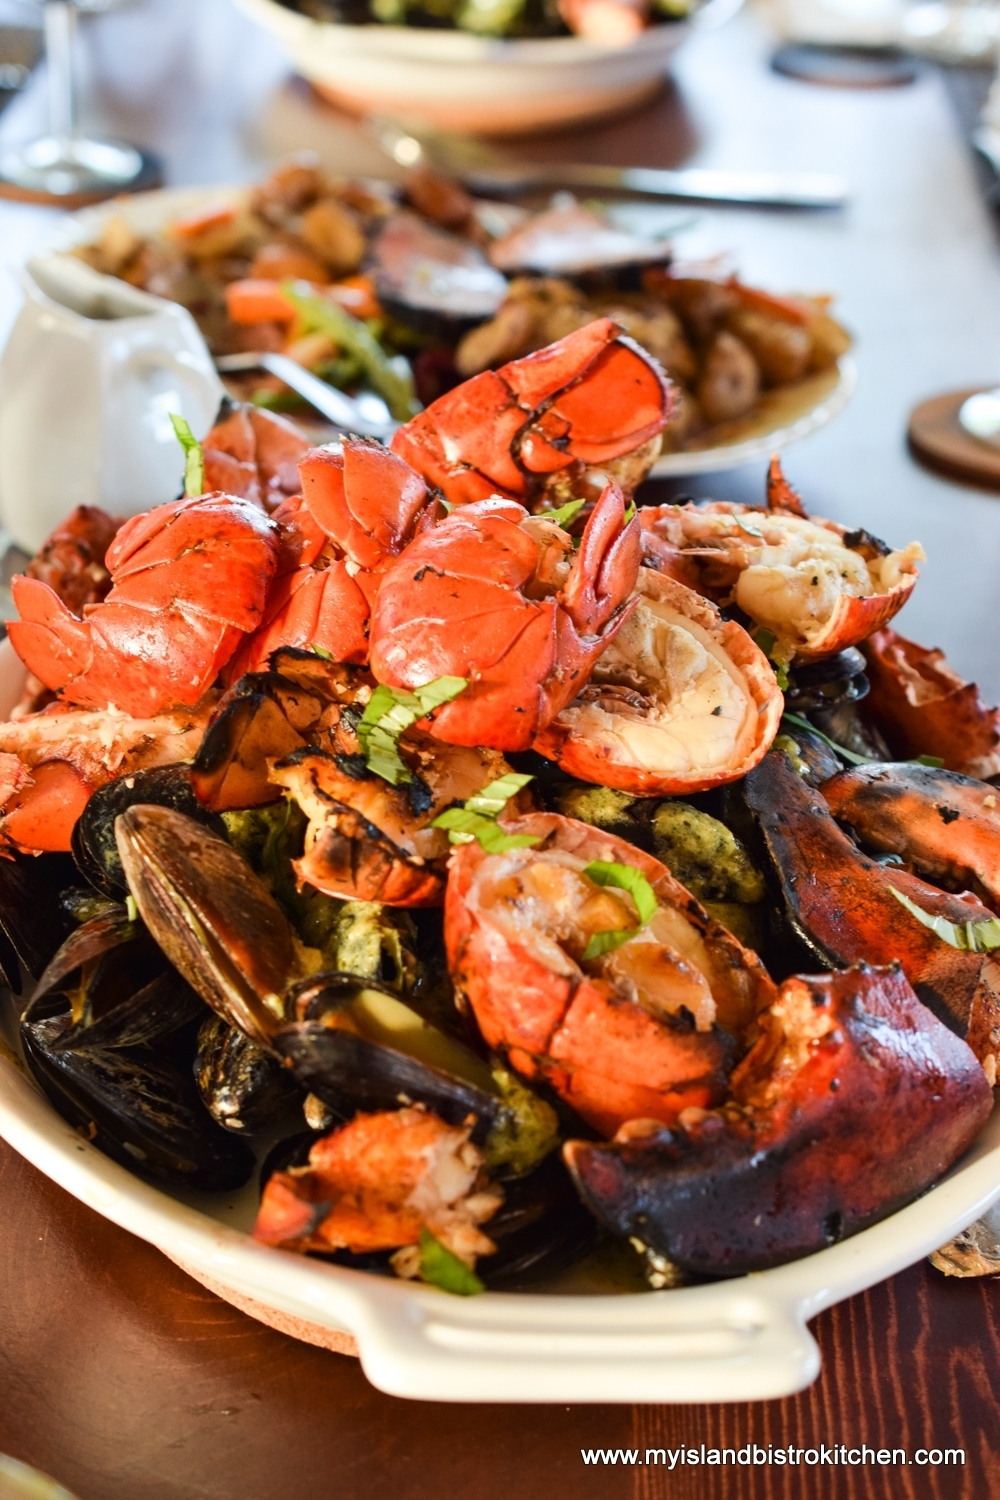 Lobsters and Mussels at The Table Culinary Studio in New London, PEI